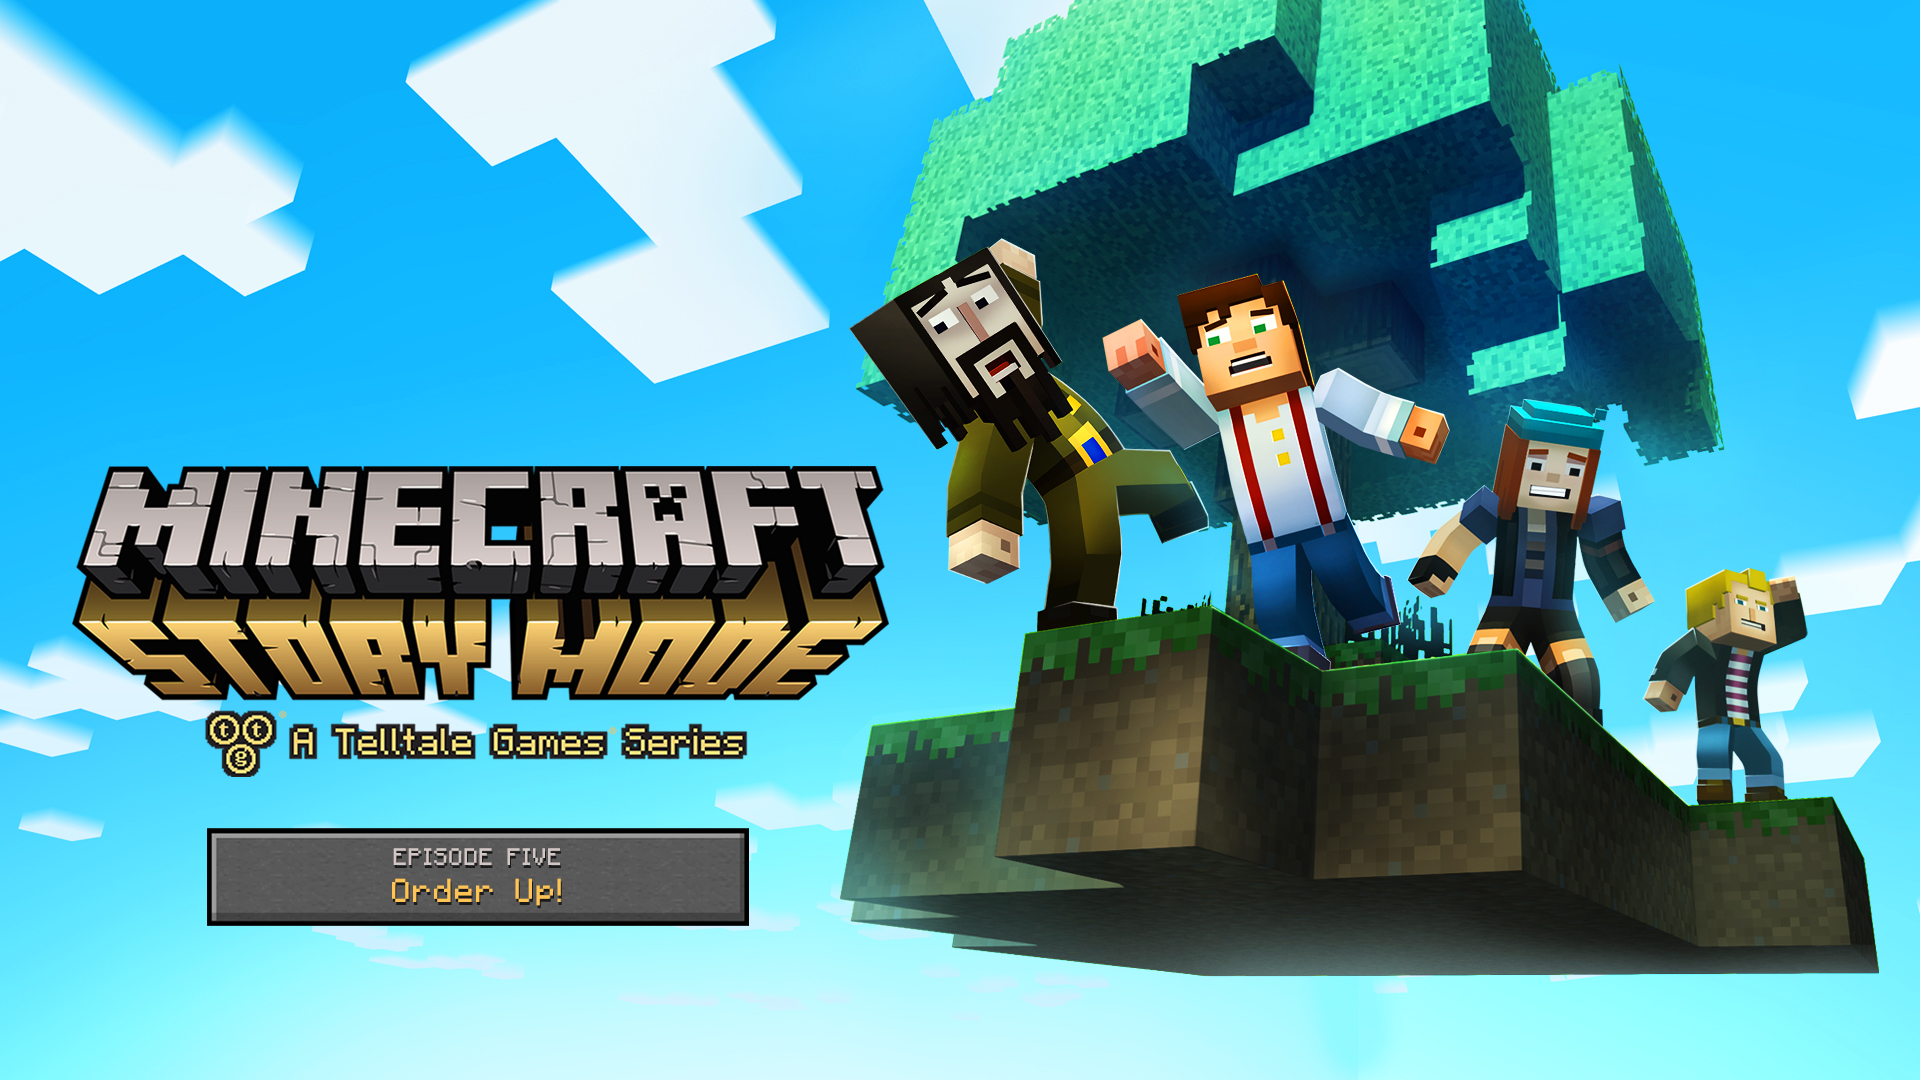 'Minecraft: Story Mode' Episode Five Gets a Release Date, Three Additional Episodes on Deck